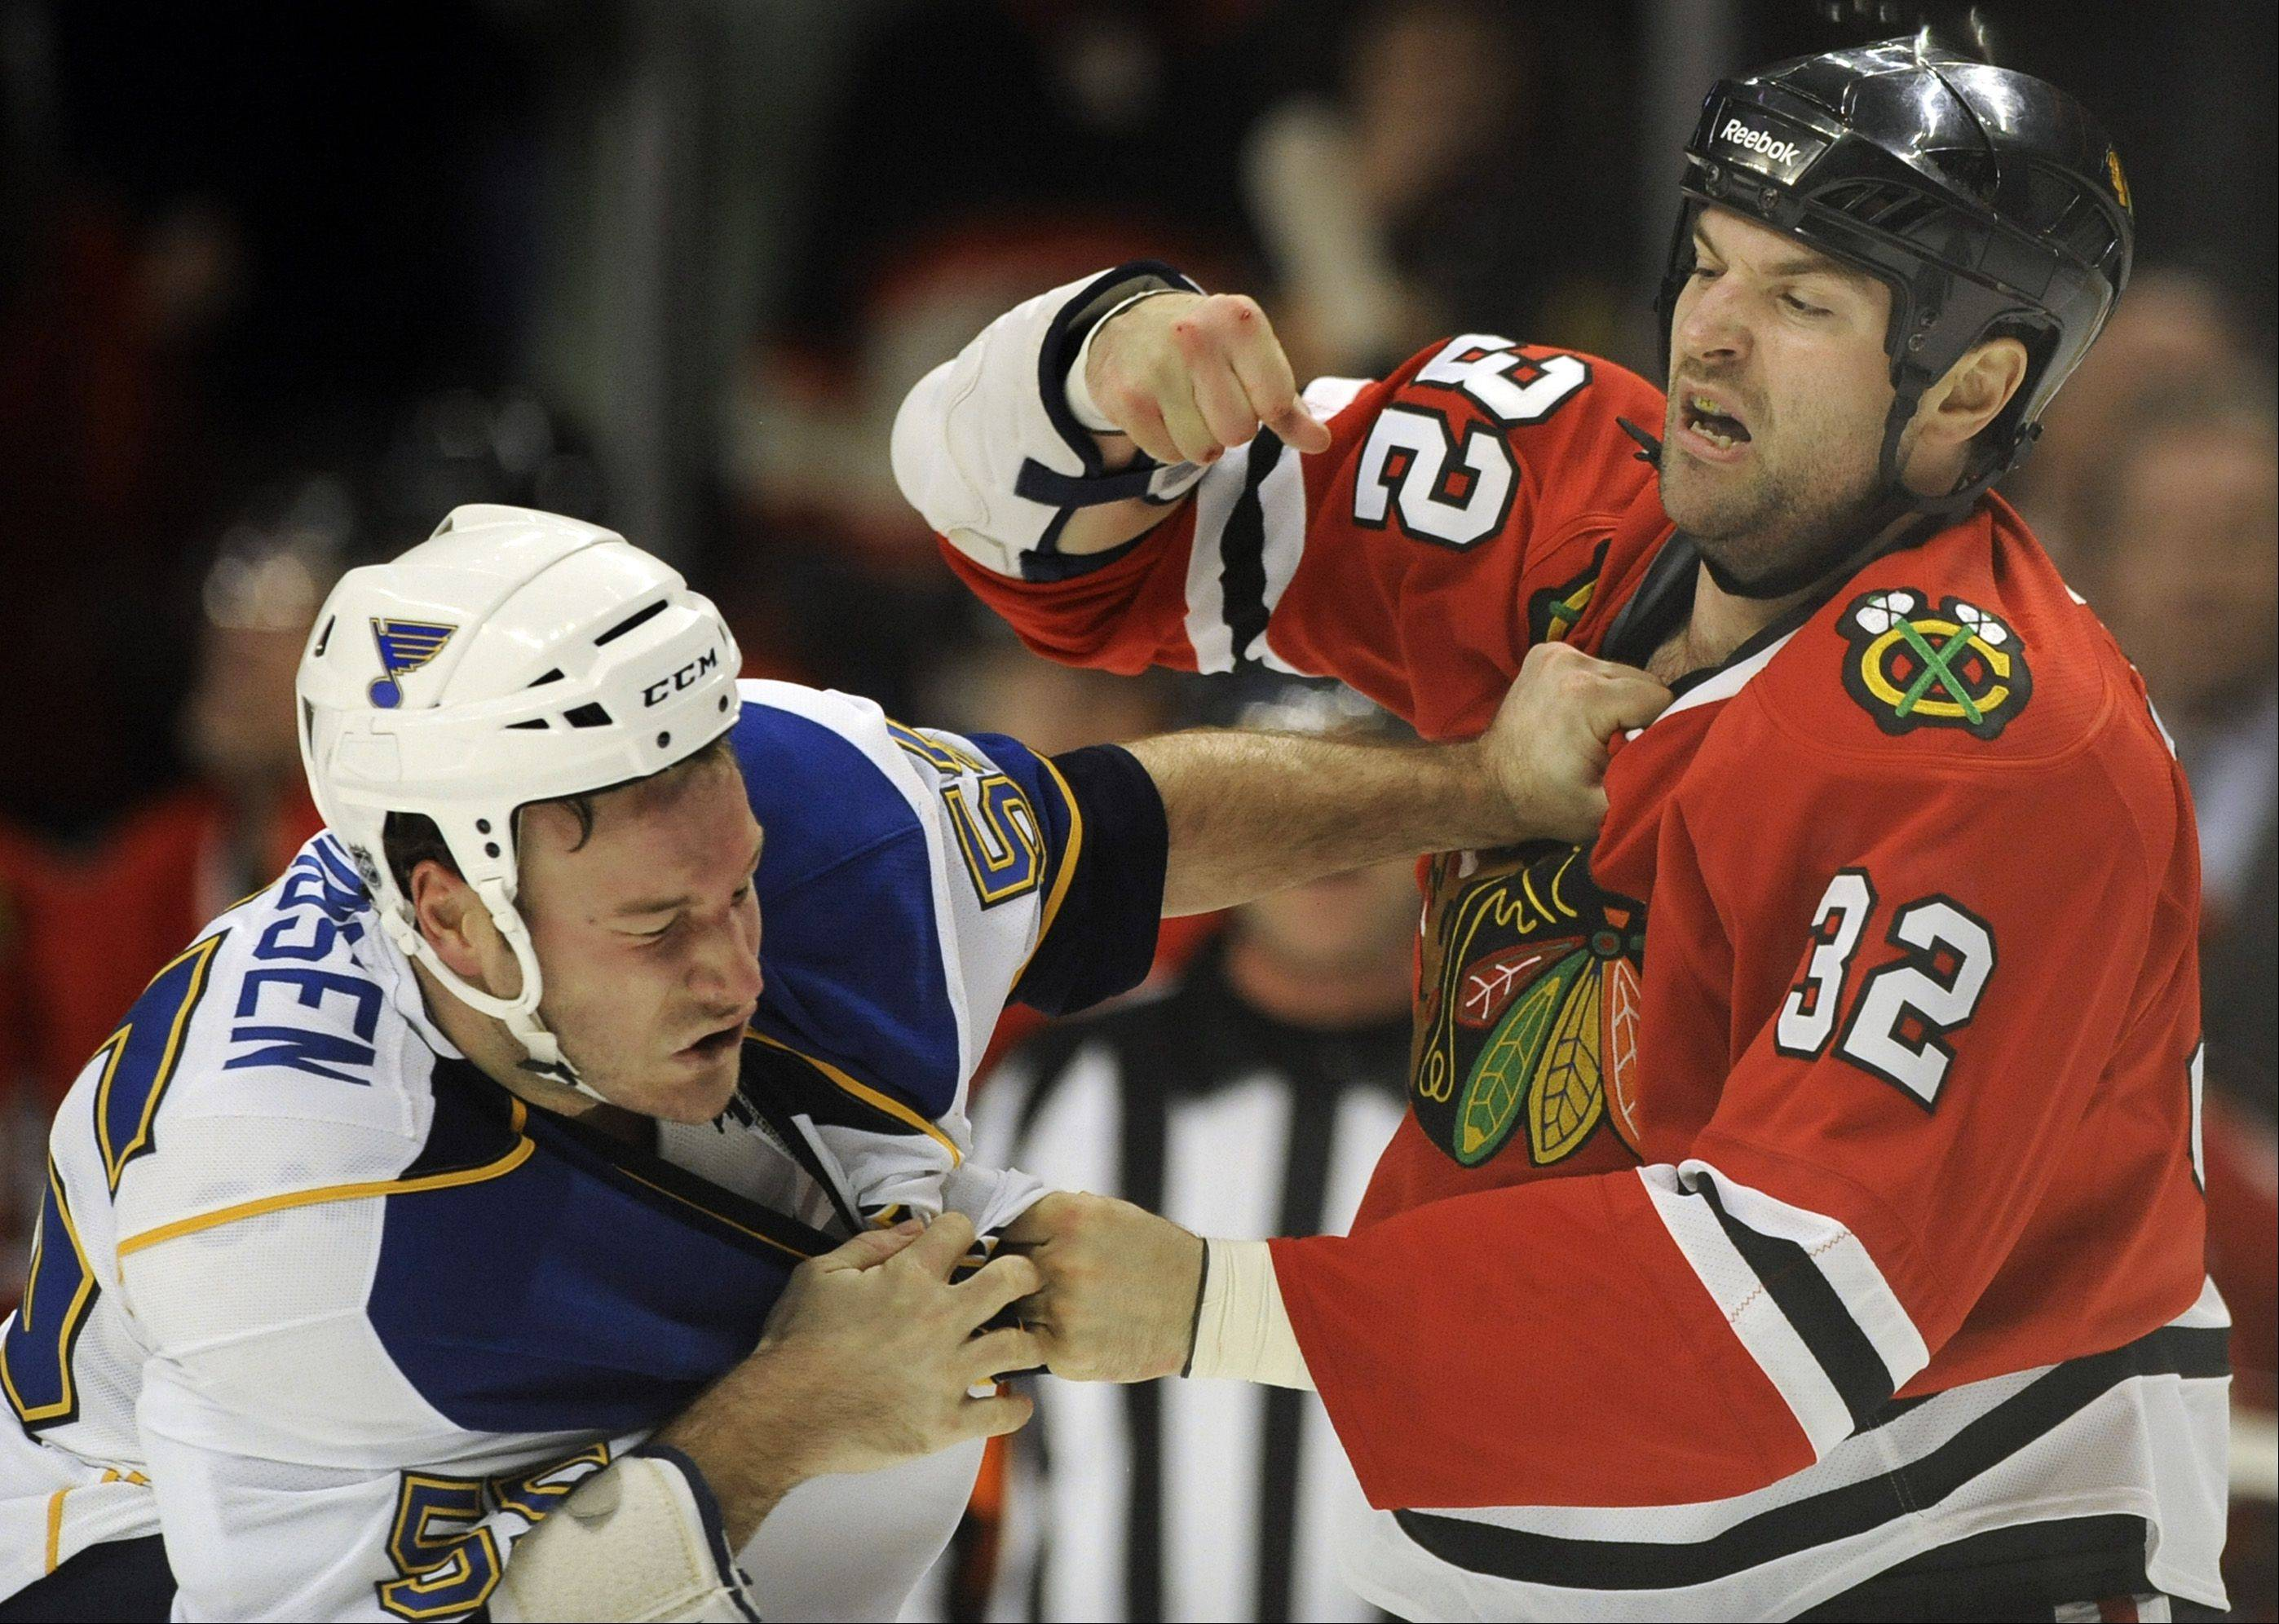 To help clear a roster spot, the Blackhawks traded defenseman and enforcer John Scott, right, to the New York Rangers for a fifth-round draft pick.